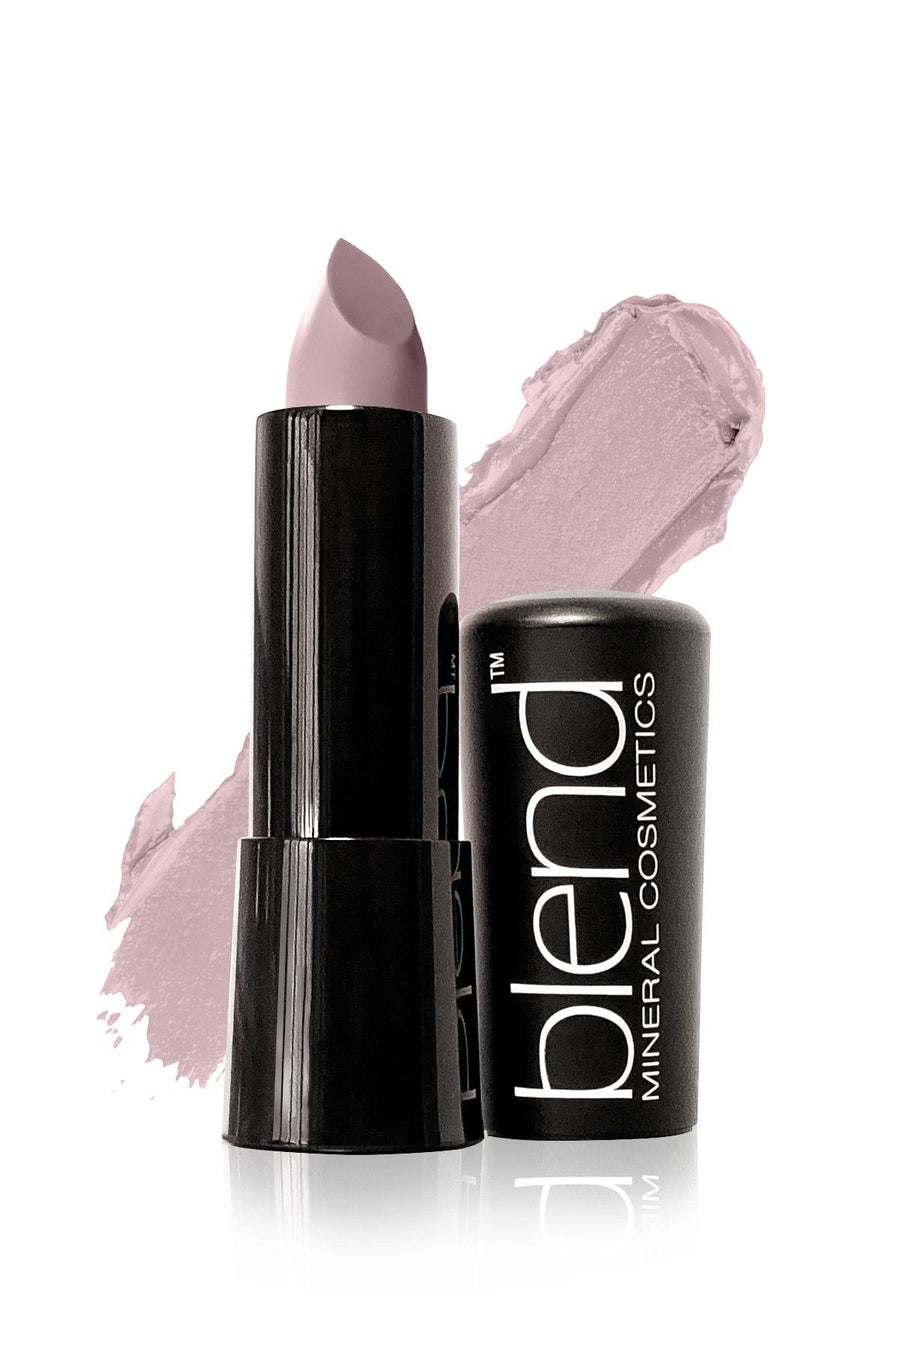 Matte Lipstick #20 - Light Pink - Blend Mineral Cosmetics